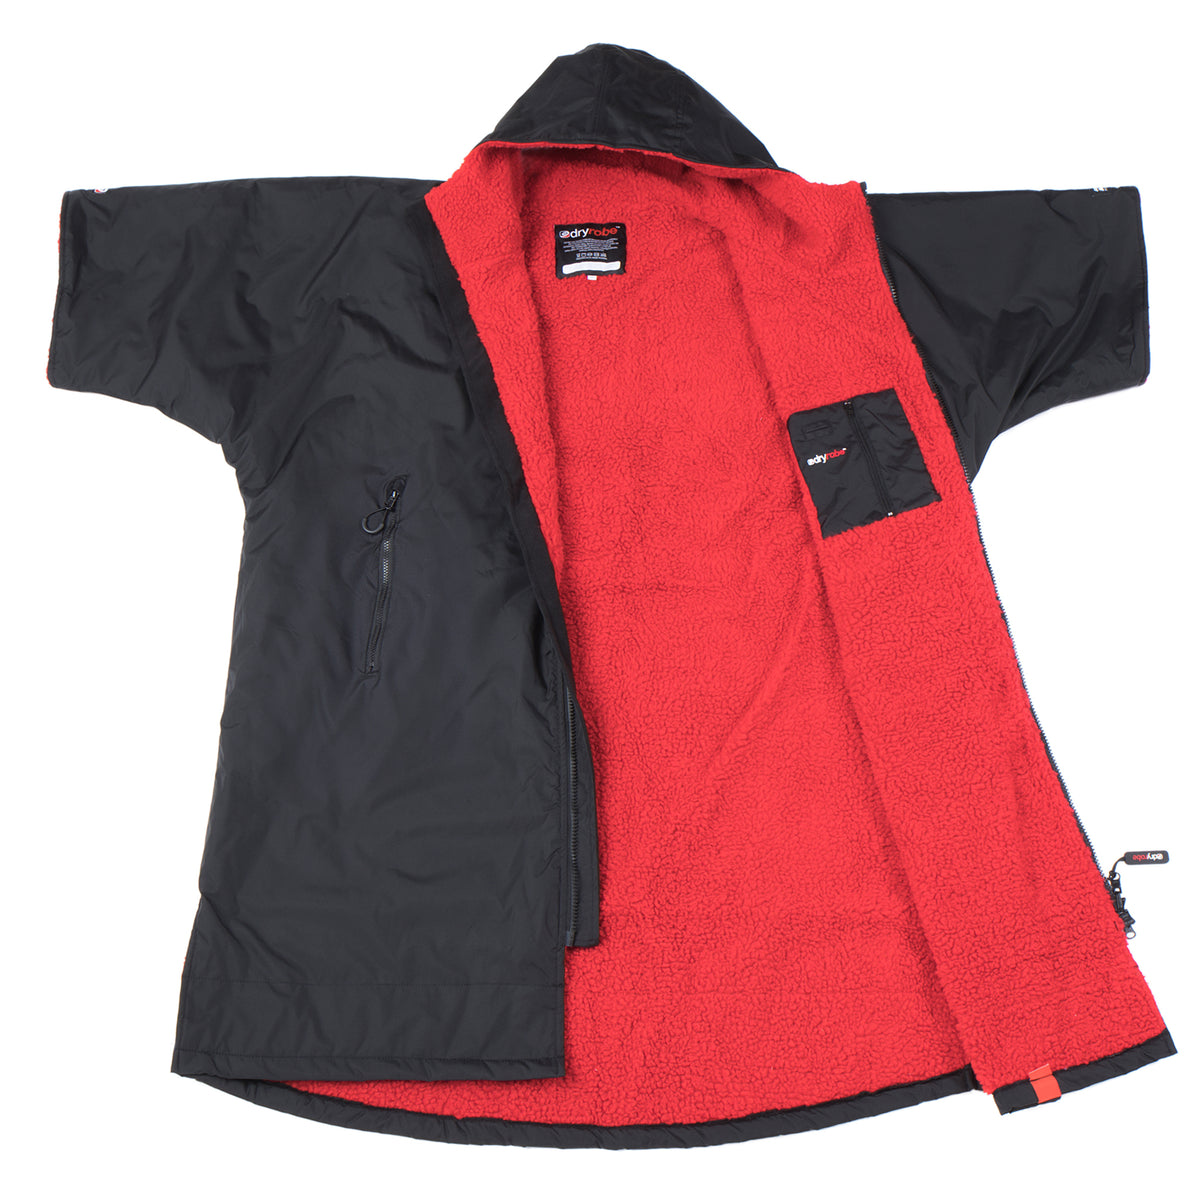 1|XS,S,M,L, dryrobe Advance Short Sleeve Large Black Red Open